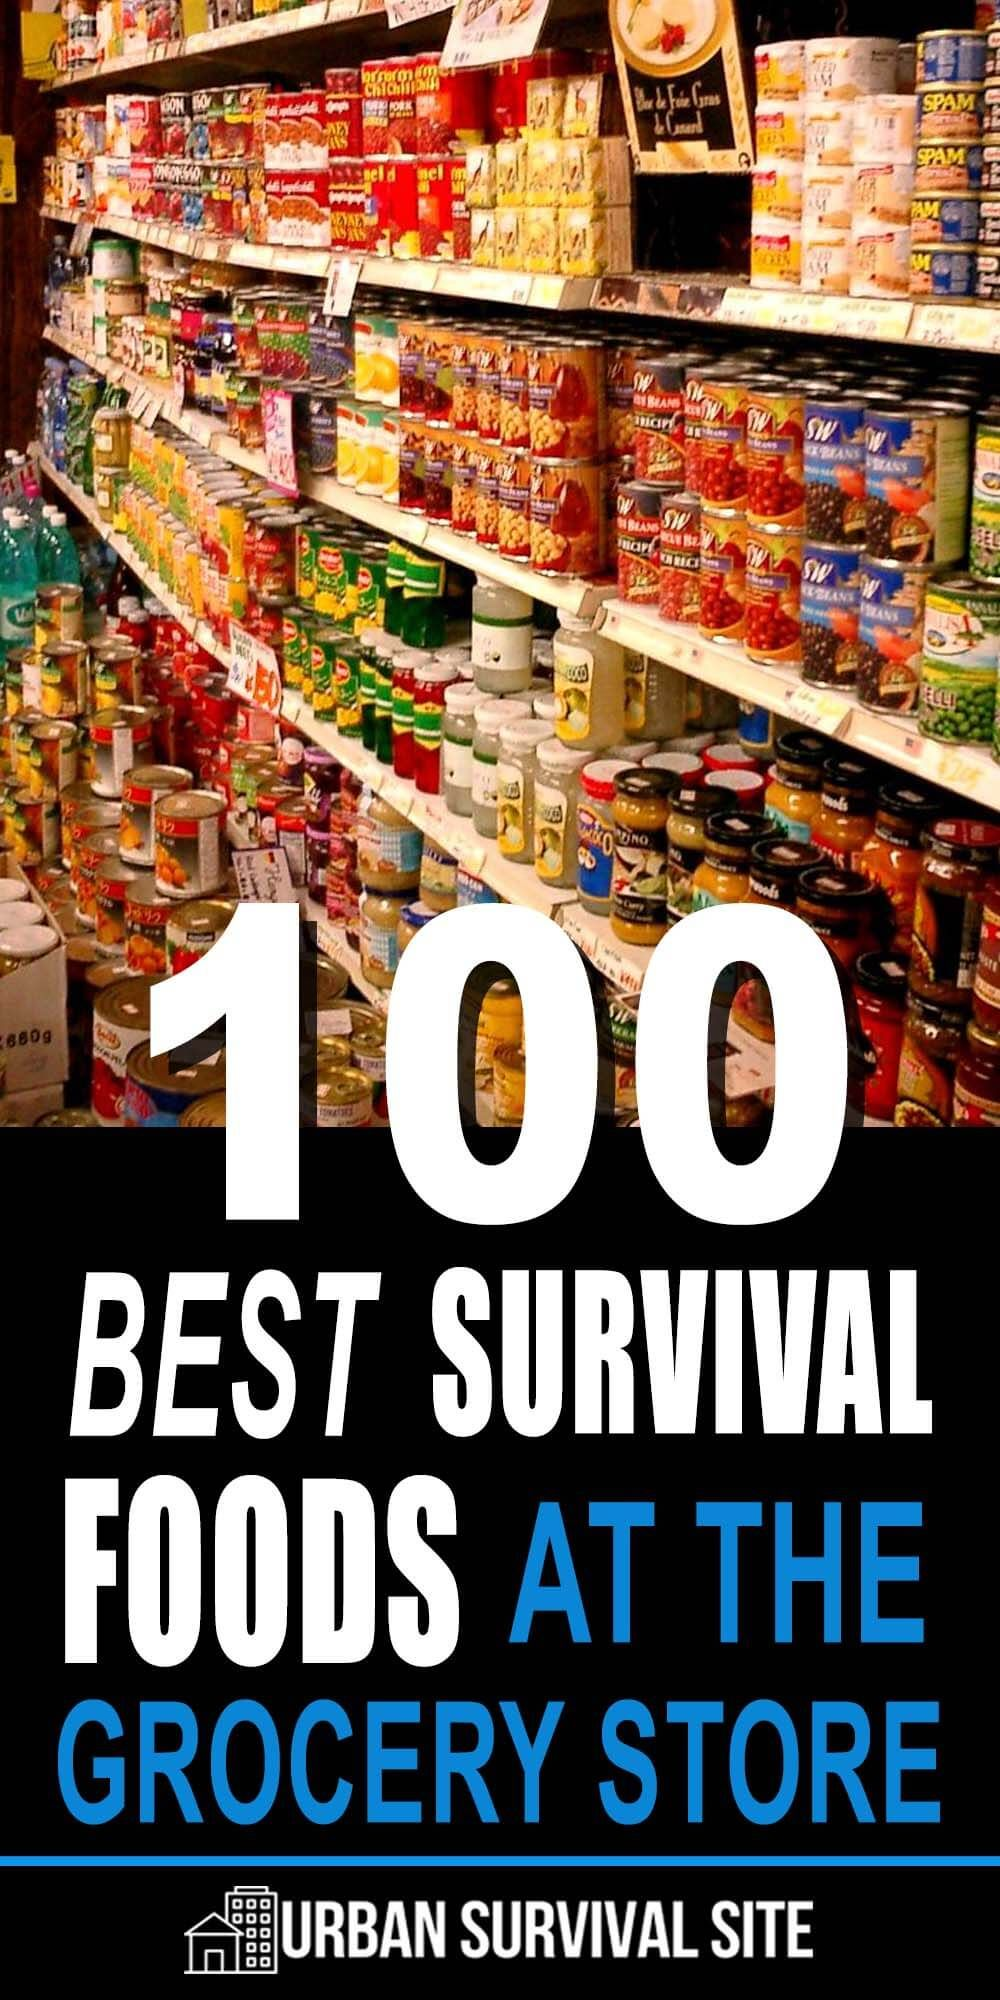 100 Best Survival Foods At The Grocery Store | Urban Survival Site